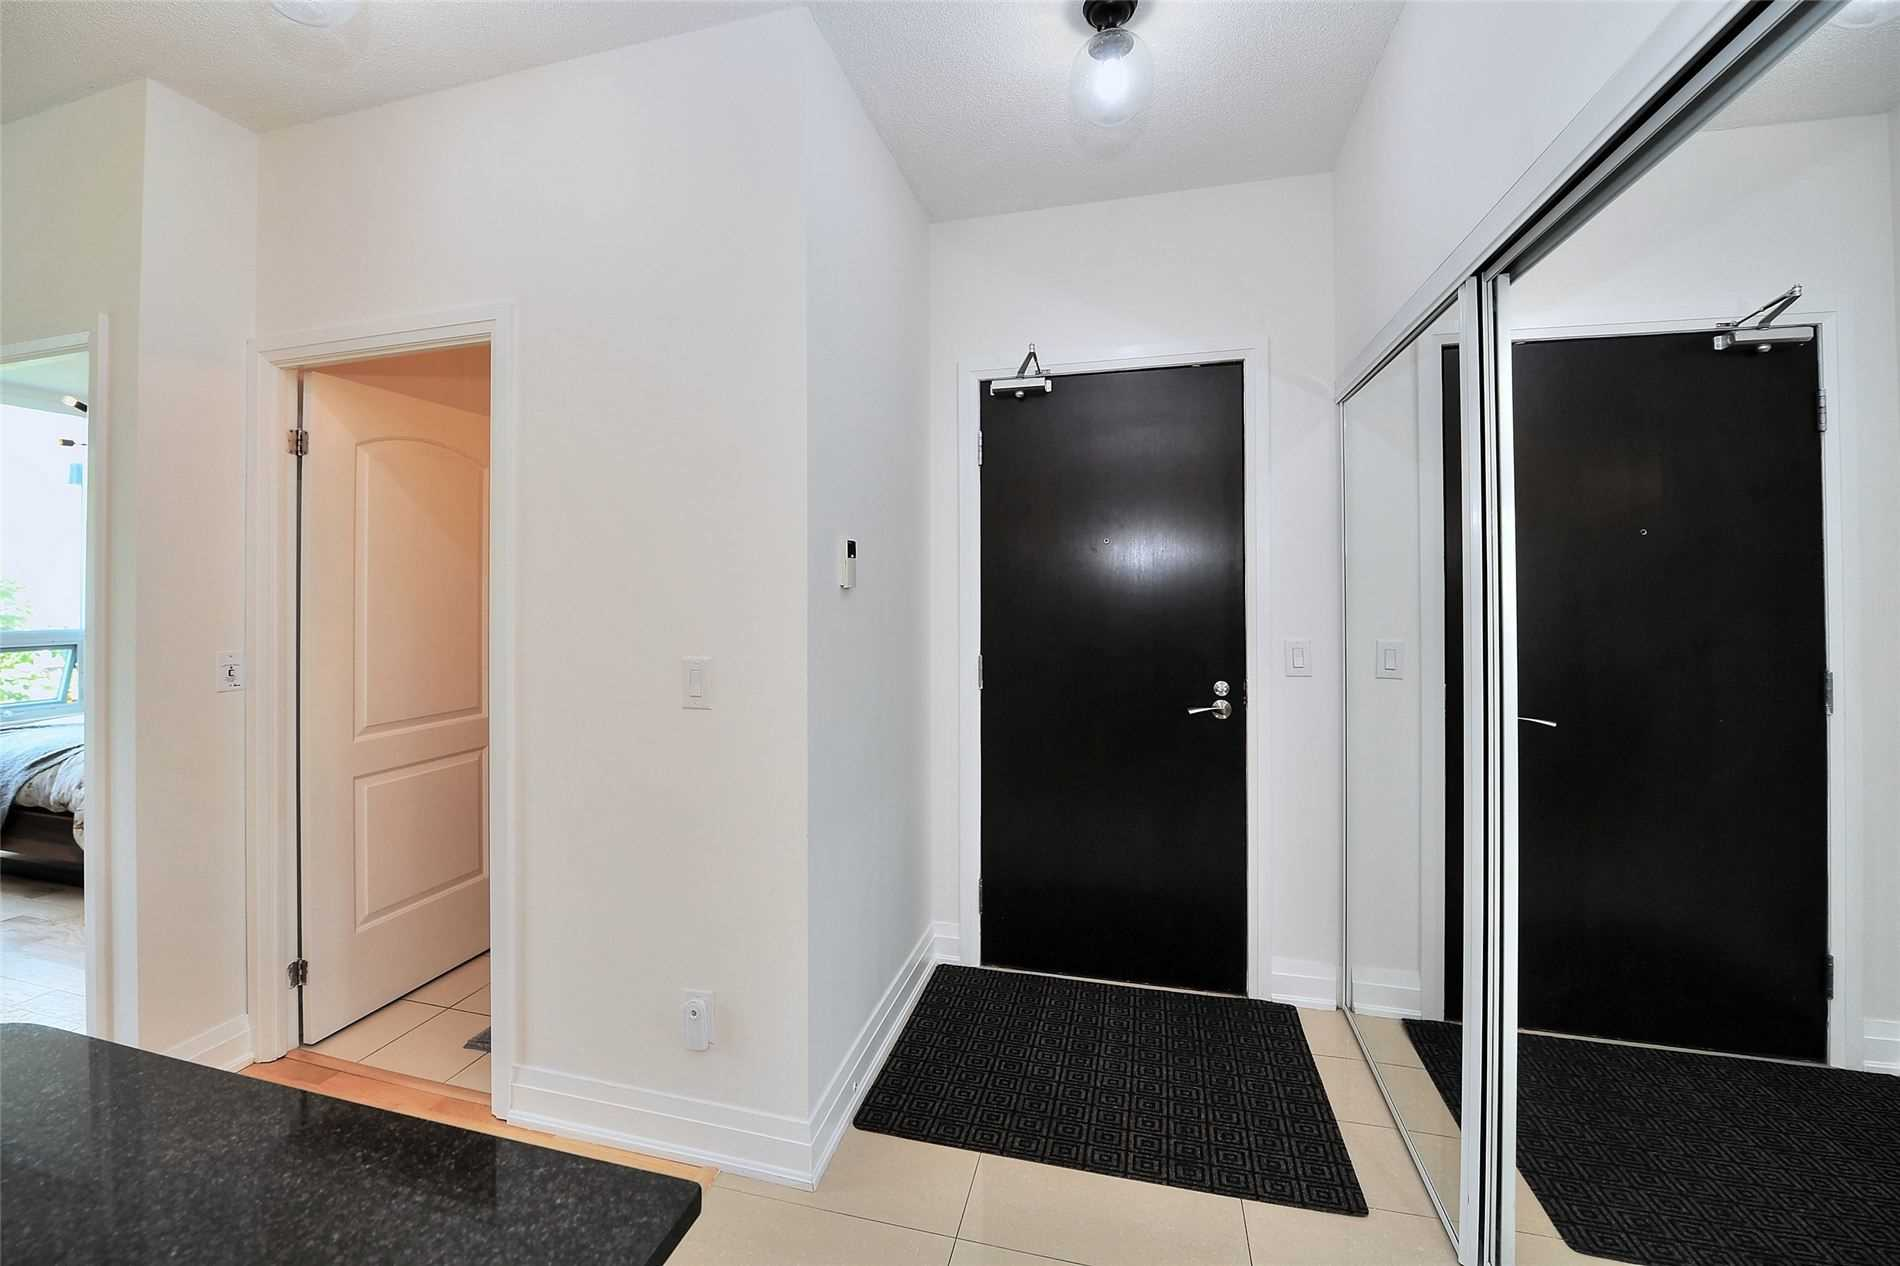 Image 30 of 30 showing inside of 1 Bedroom Condo Apt Apartment for Sale at 30 North Park Rd Unit# 101, Vaughan L4J0G6